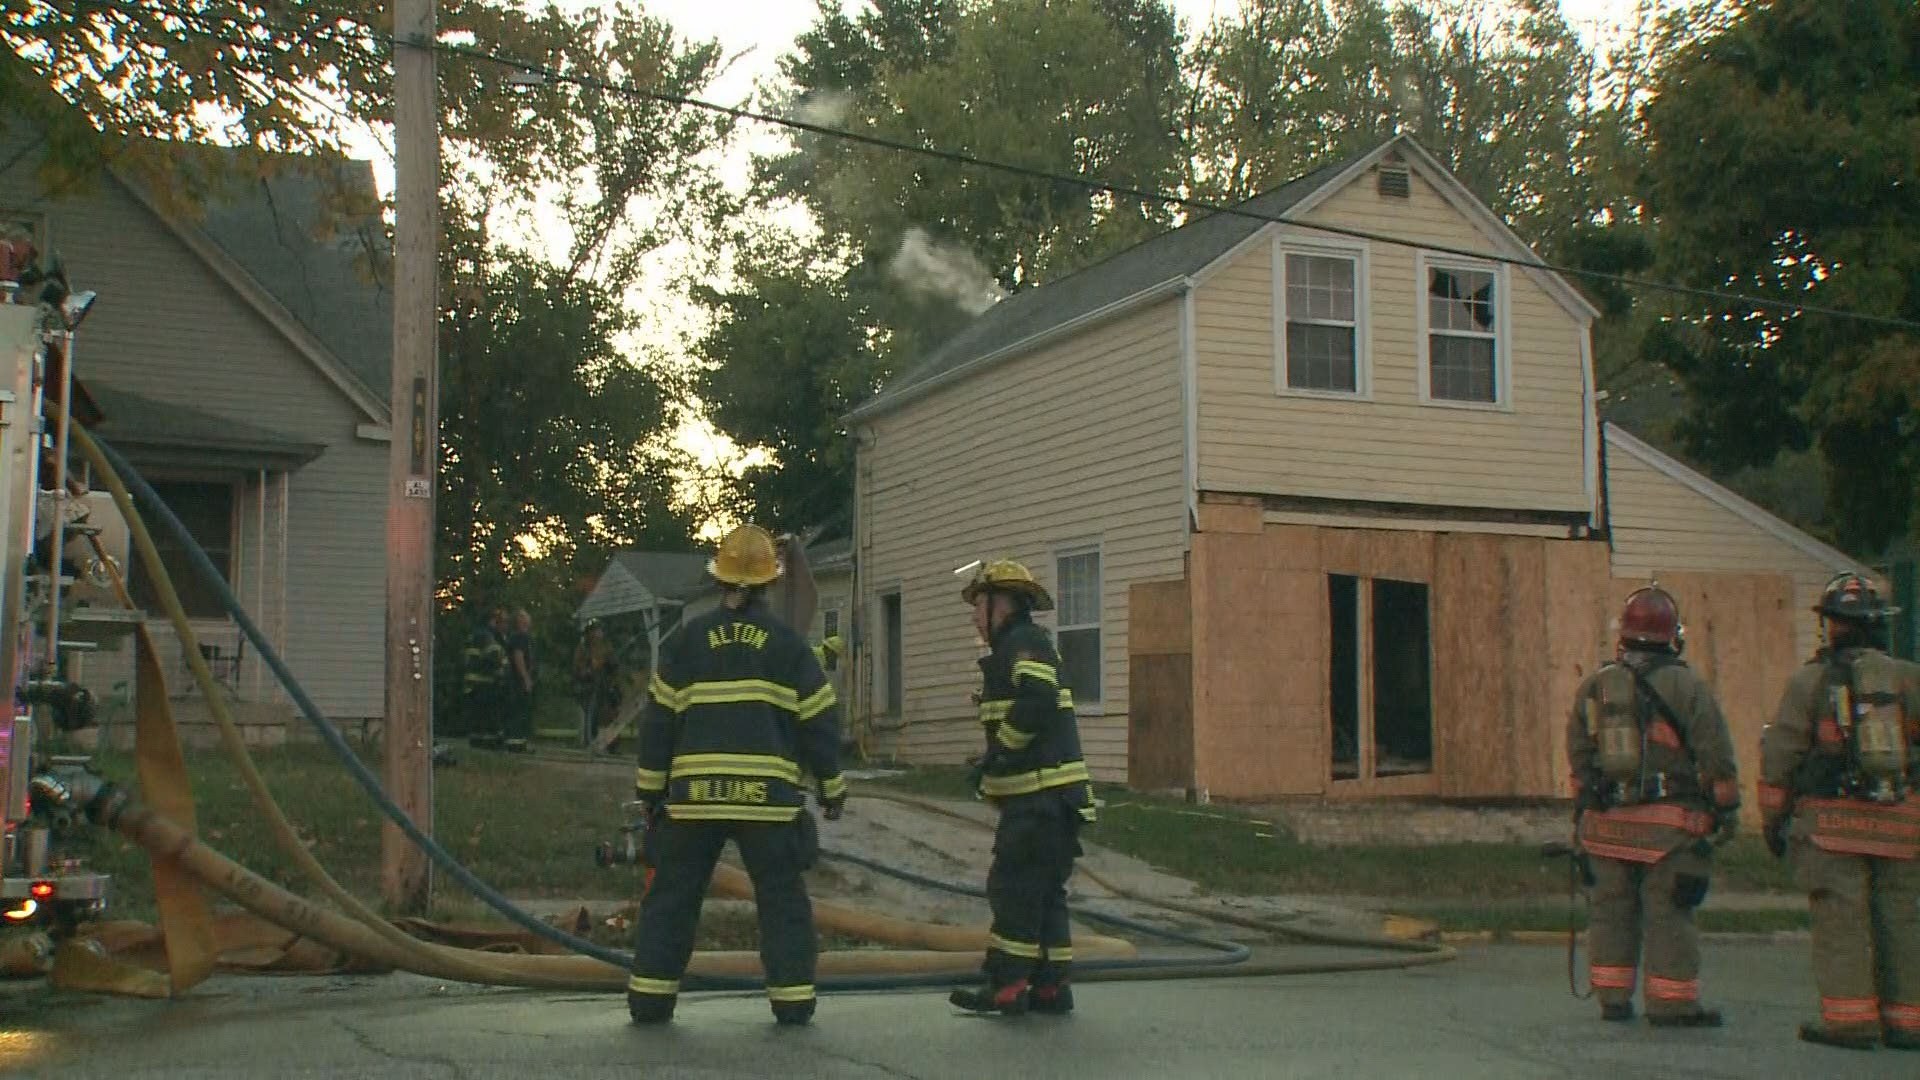 Suspicious Fire in Alton Home after previously being hit